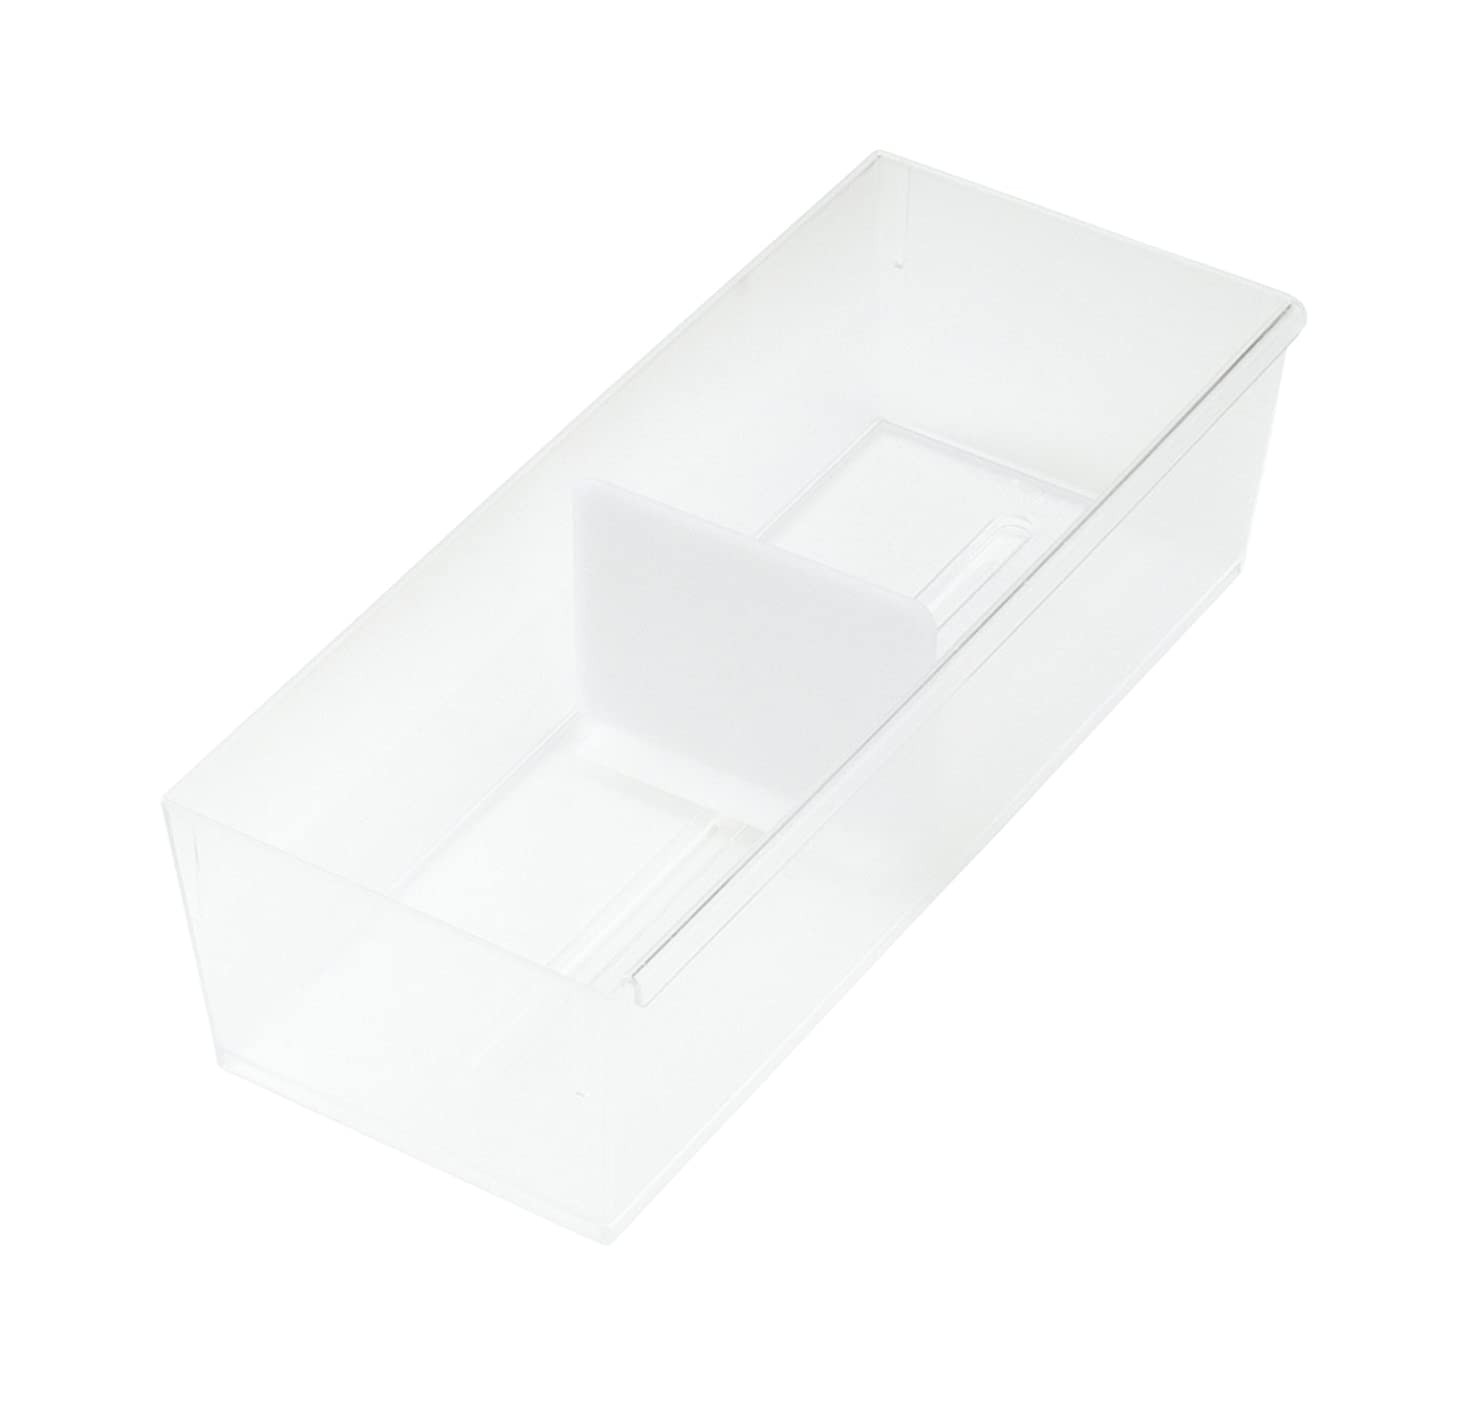 Like-It CS-P11 Drawer Organizer for Lingerie, Clear